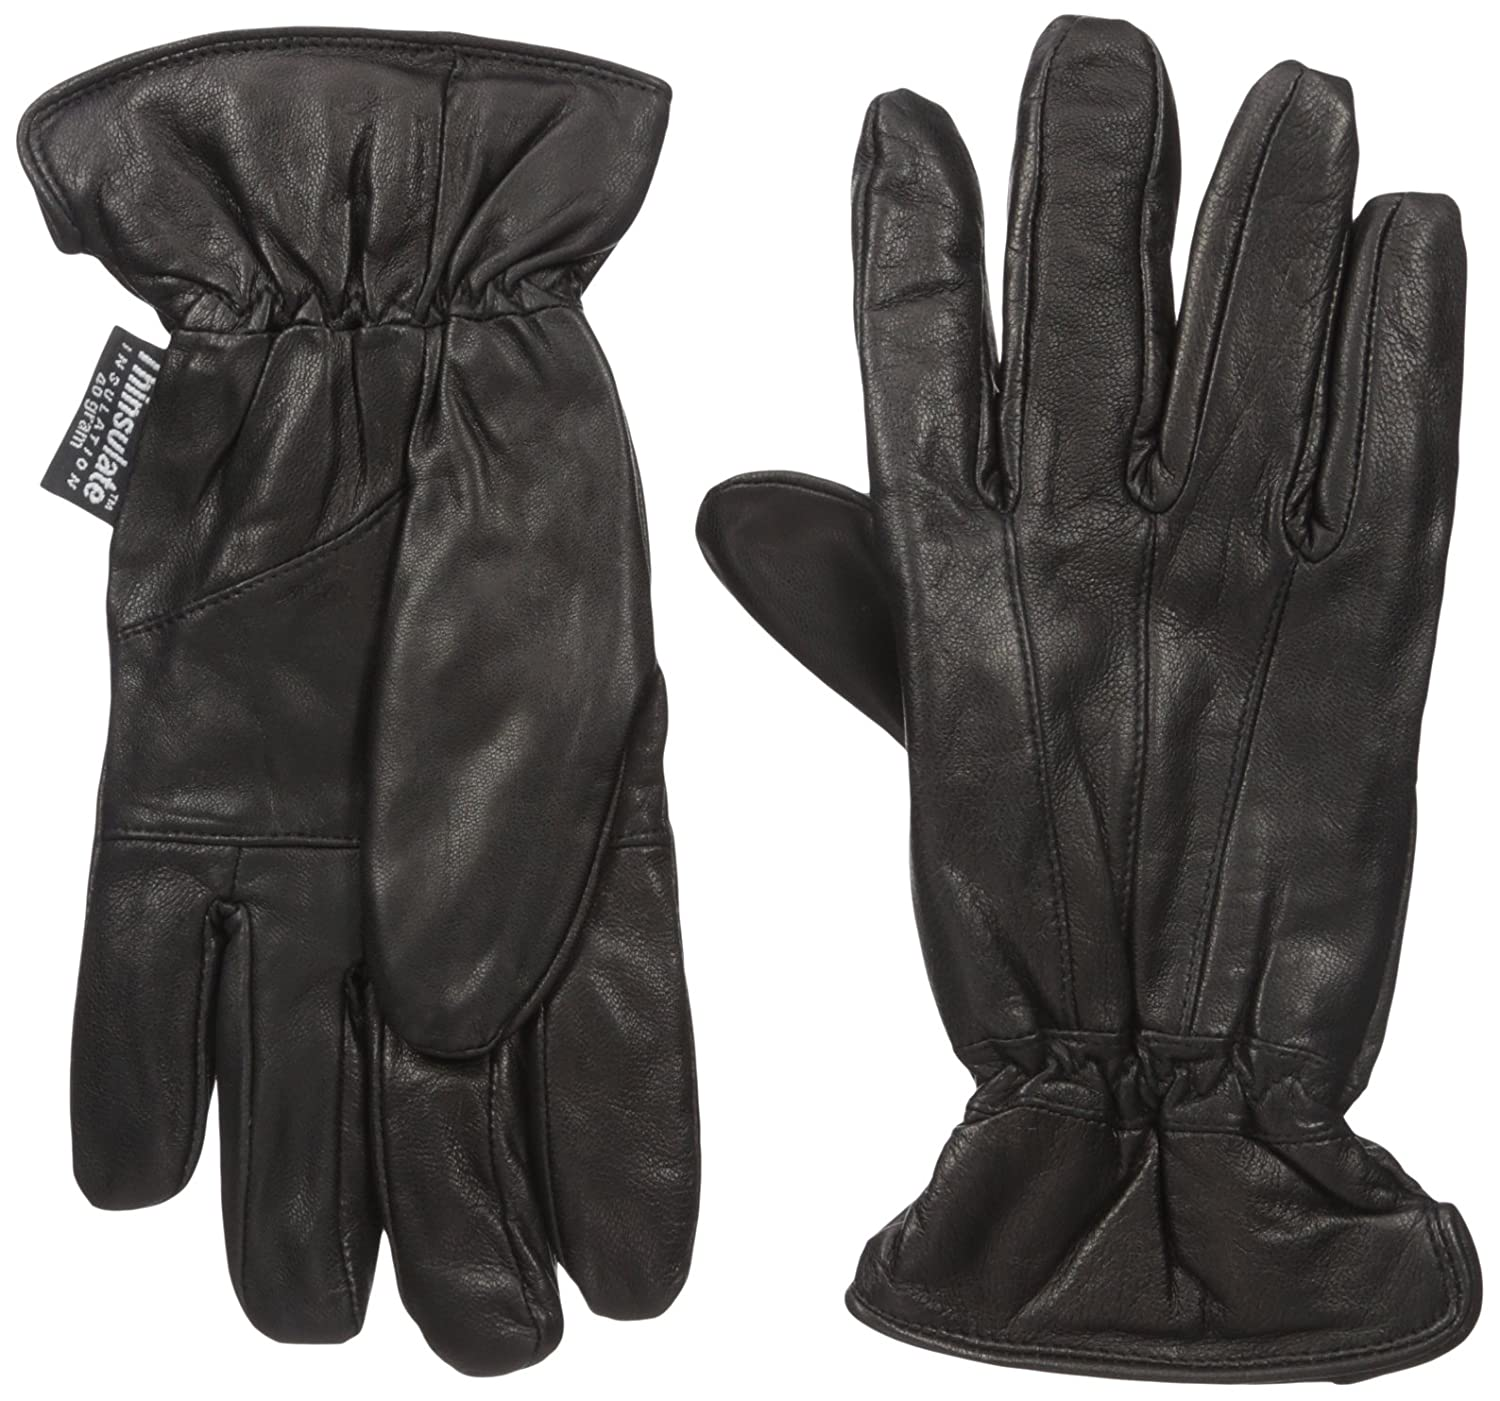 Leather driving gloves bulk - Dorfman Pacific Womens Lambskin Leather Thinsulate Lined Driving Gloves Small Medium Black At Amazon Women S Clothing Store Cold Weather Gloves